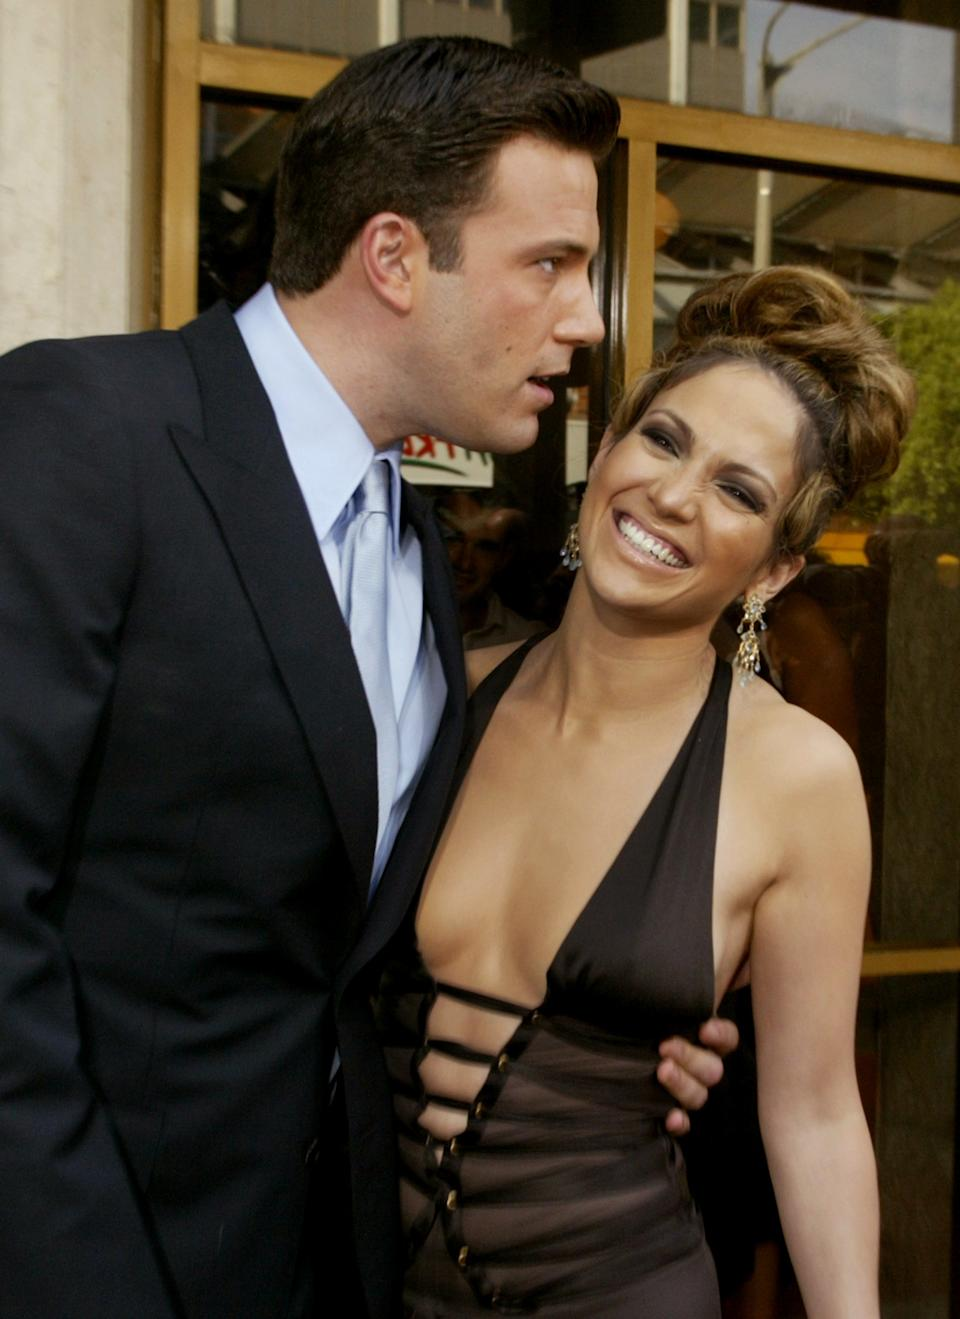 Actress Jennifer Lopez and fiance, actor Ben Affleck, pose for photographers as they arrive for the premiere of their new film